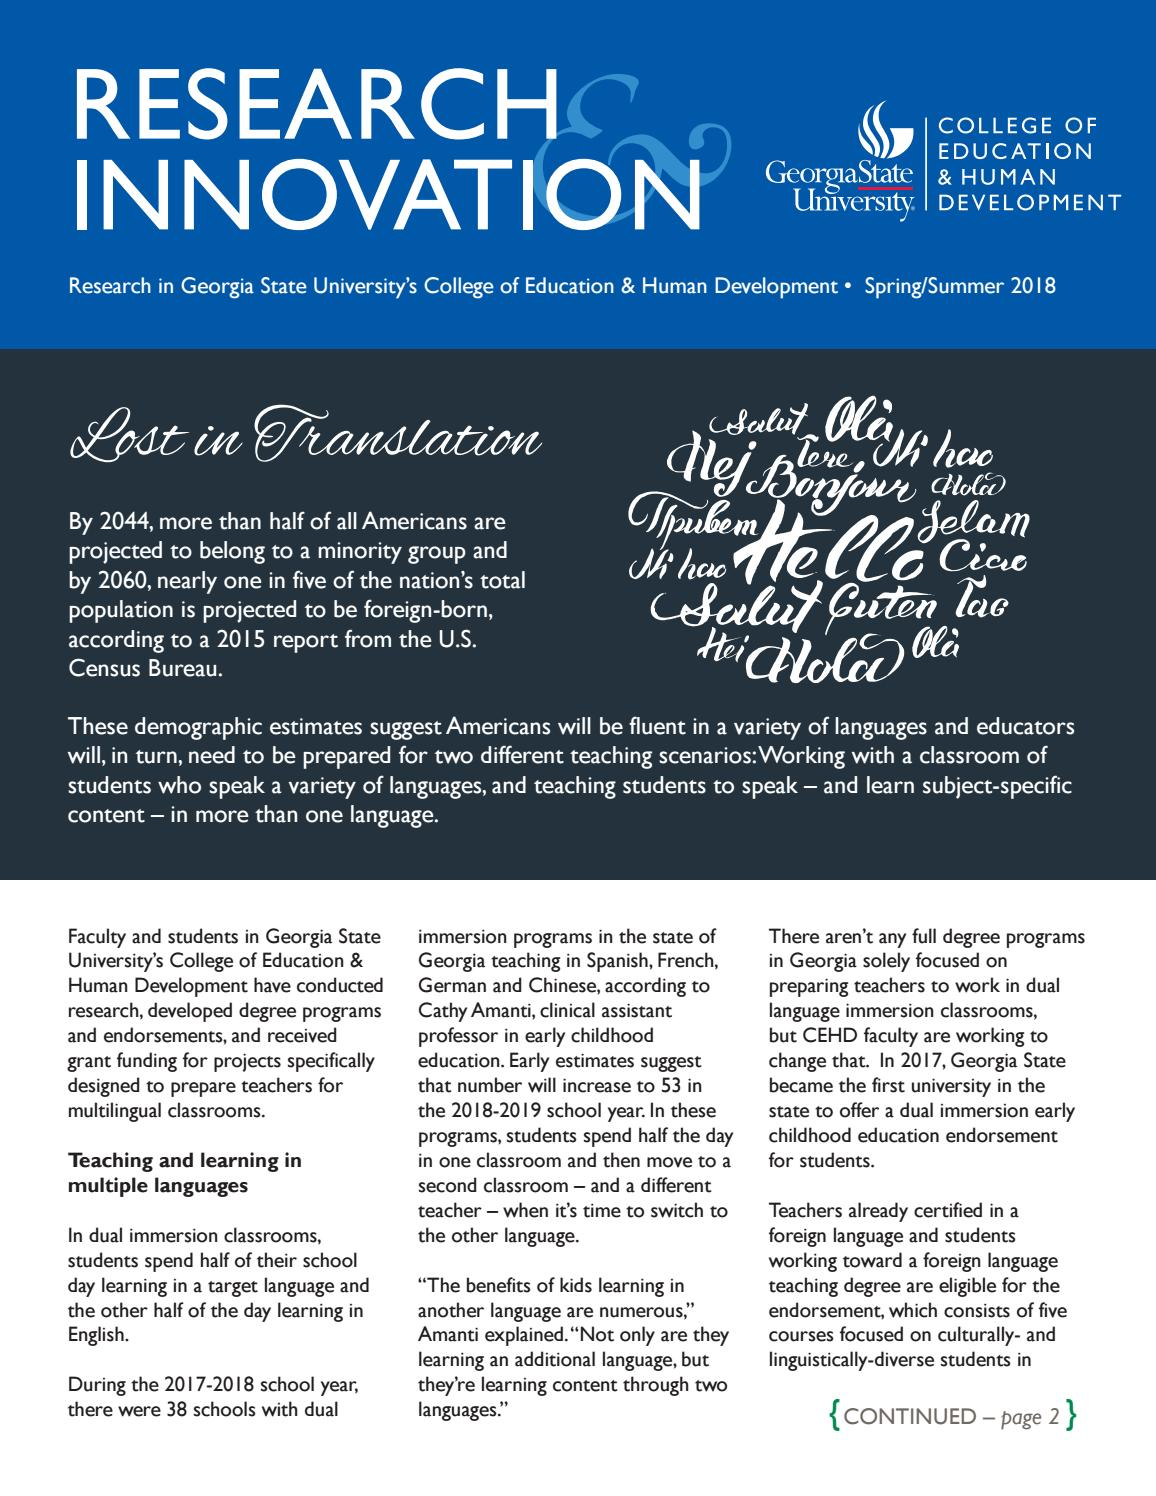 Research Innovation Springsummer 2018 By Georgia State